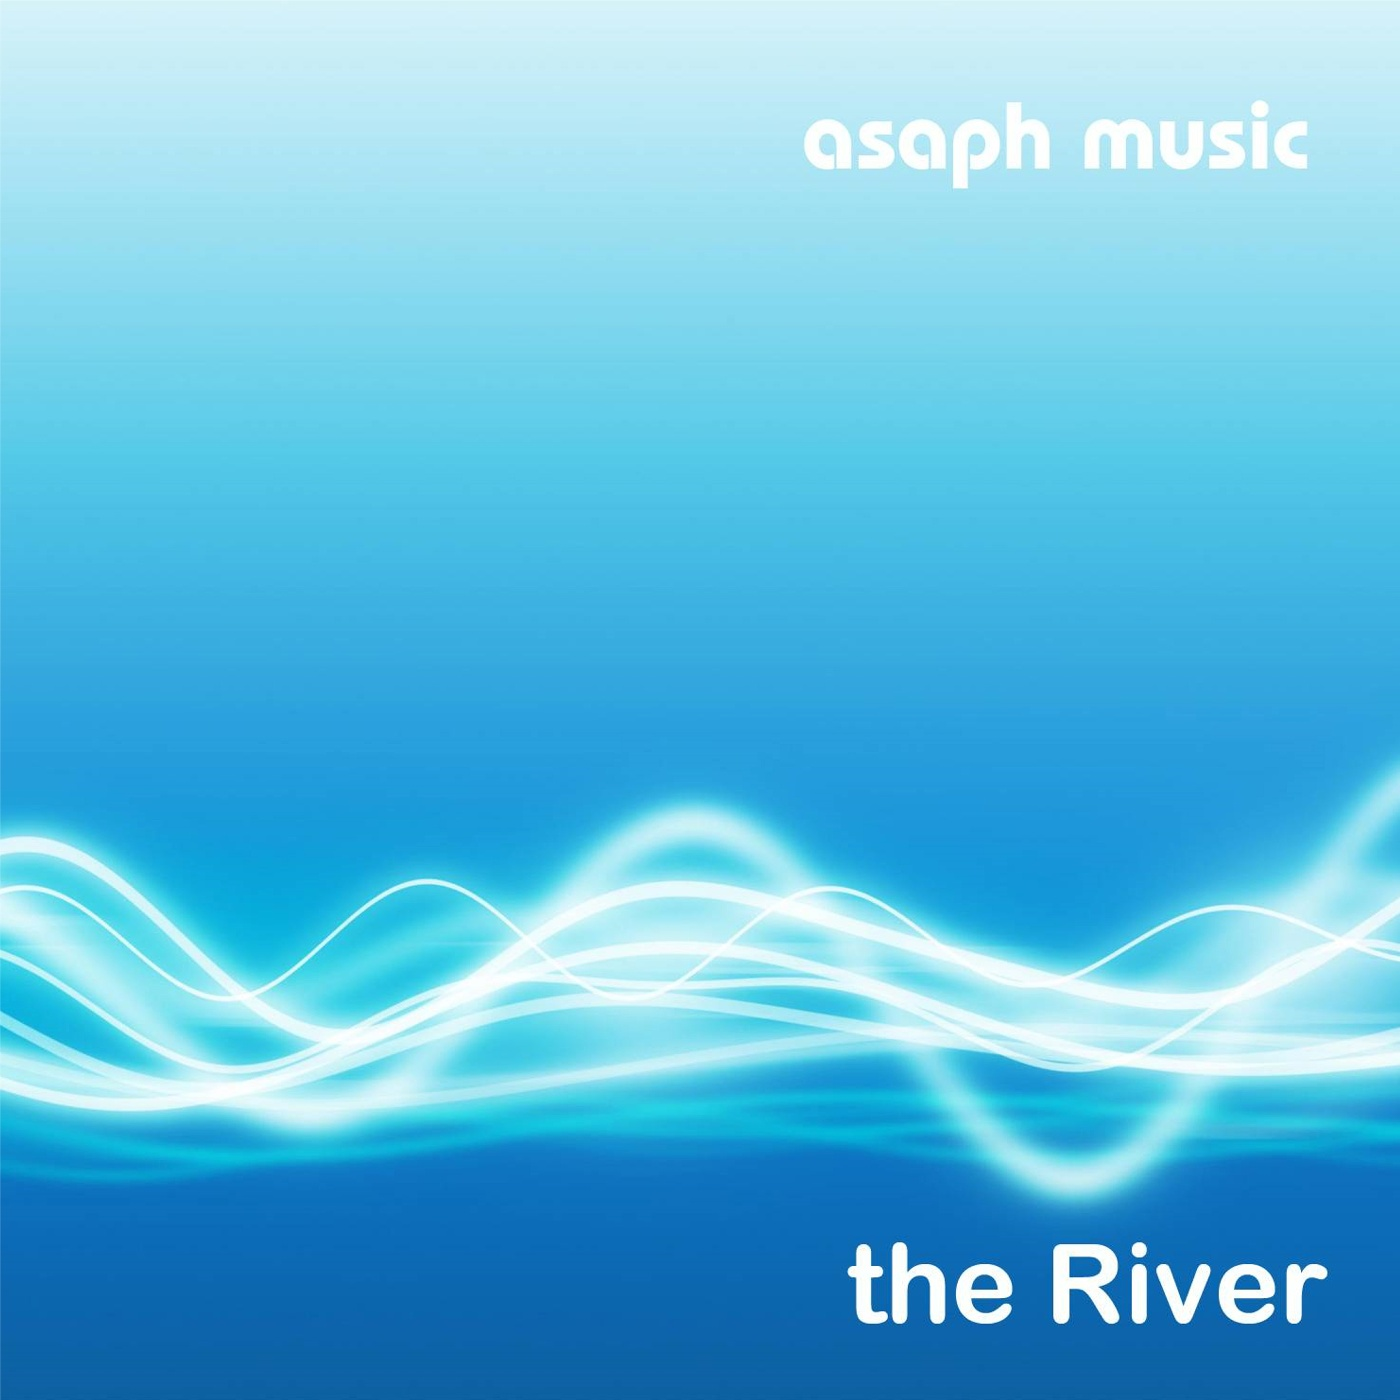 Asaph Music - The River